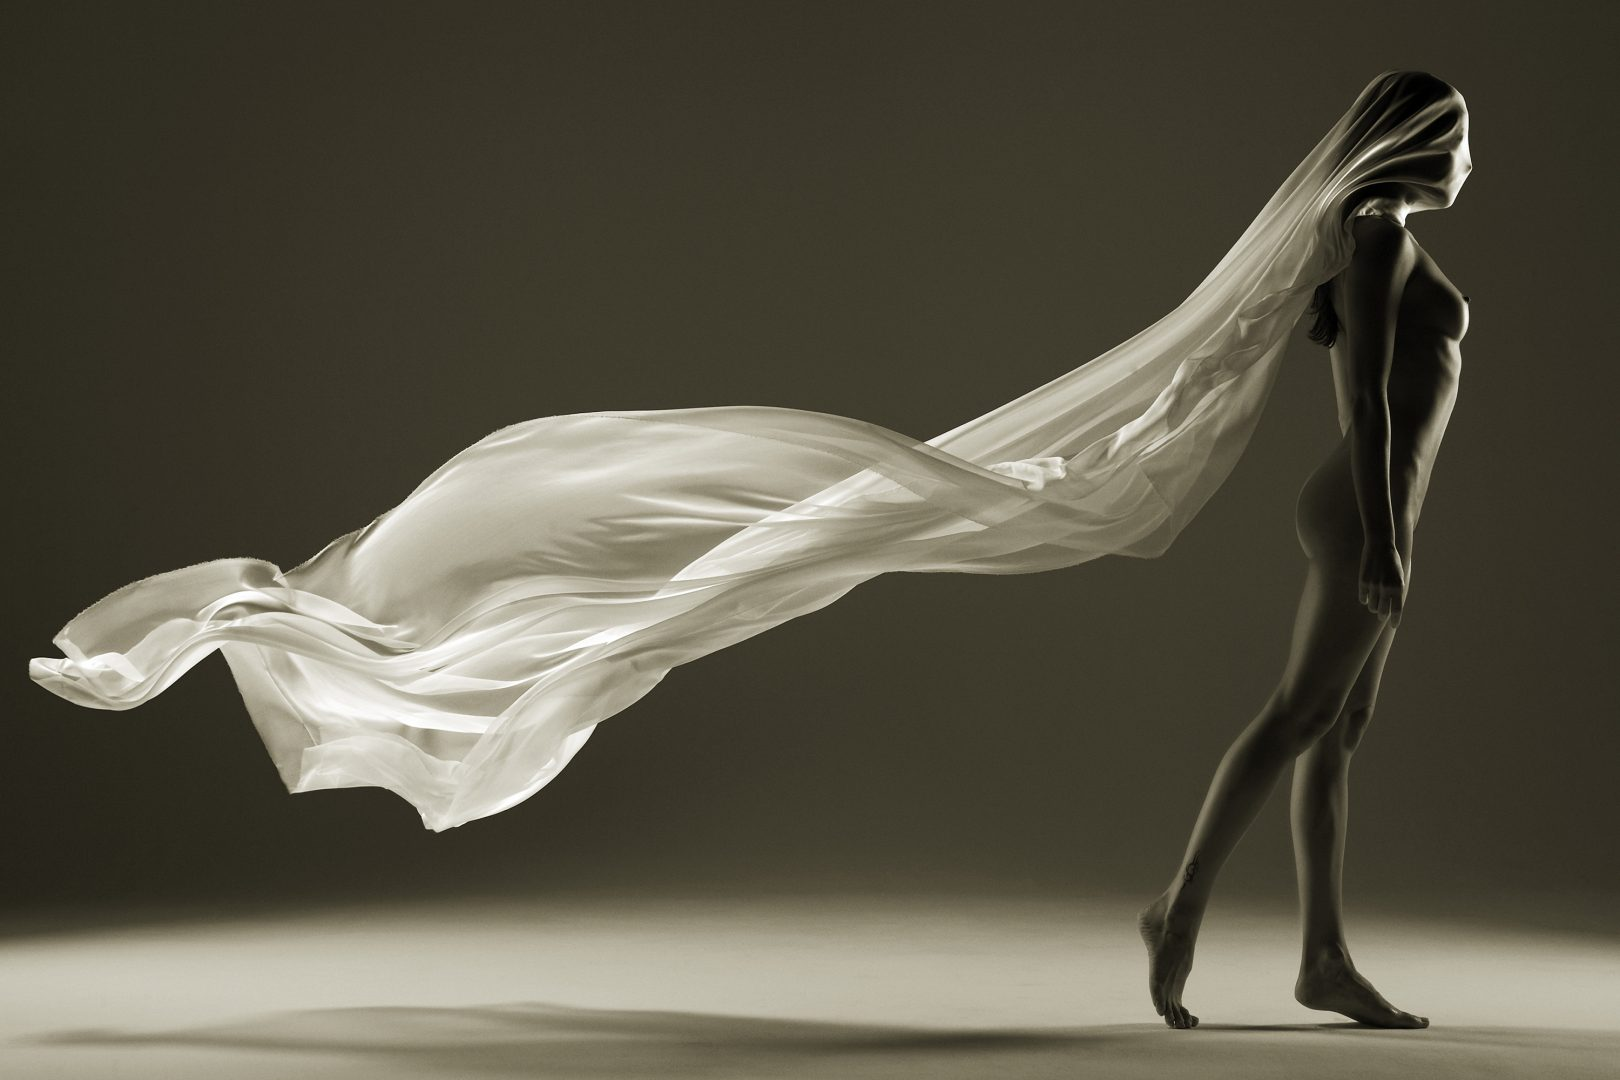 Naked girl with flying fabric on heat with Stefan Rappo